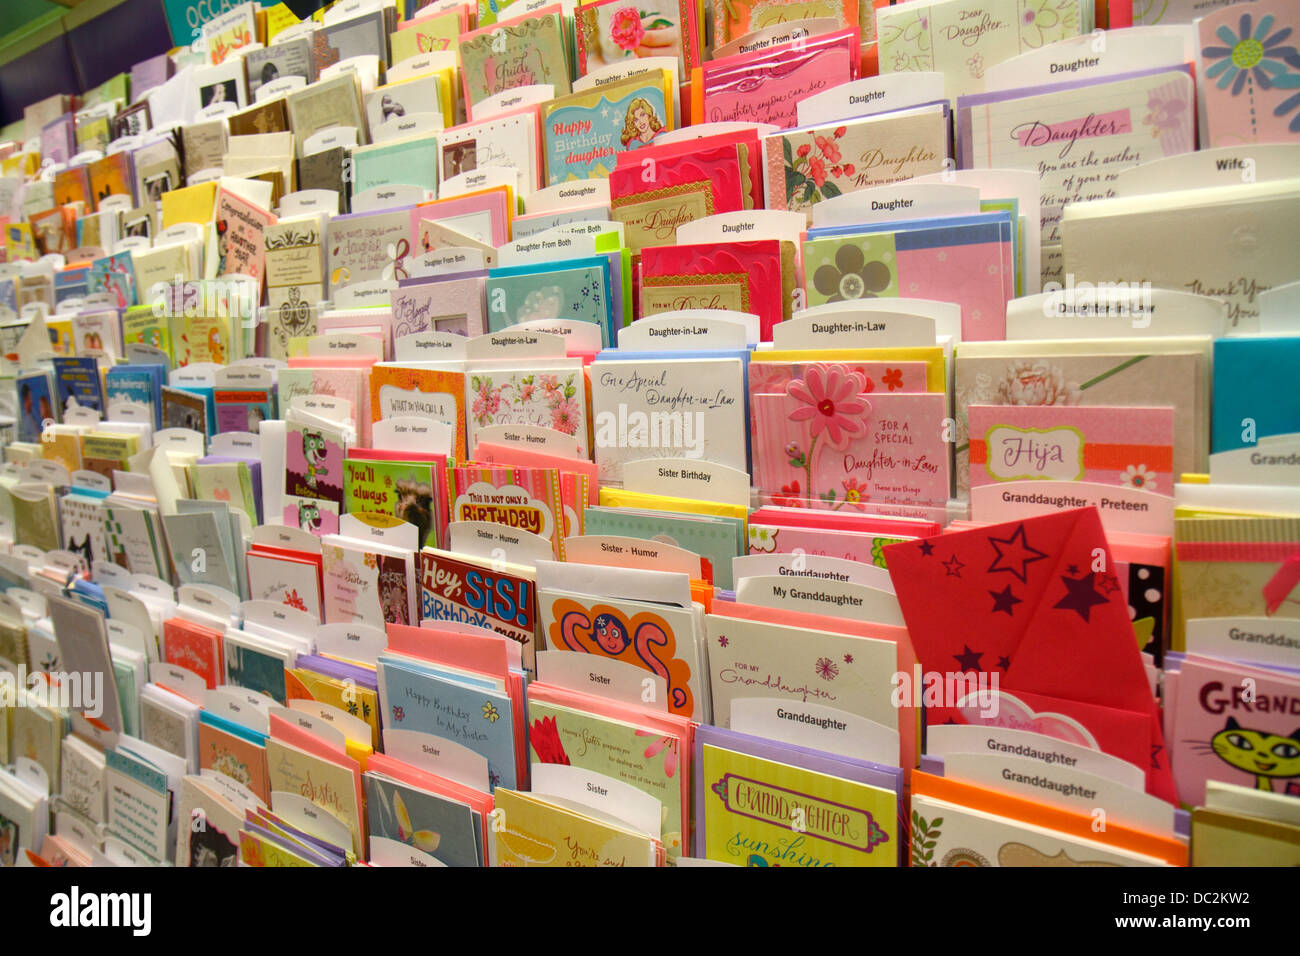 Greeting cards store stock photos greeting cards store stock florida weston fort ft lauderdale publix grocery store supermarket shopping retail display sale greeting cards m4hsunfo